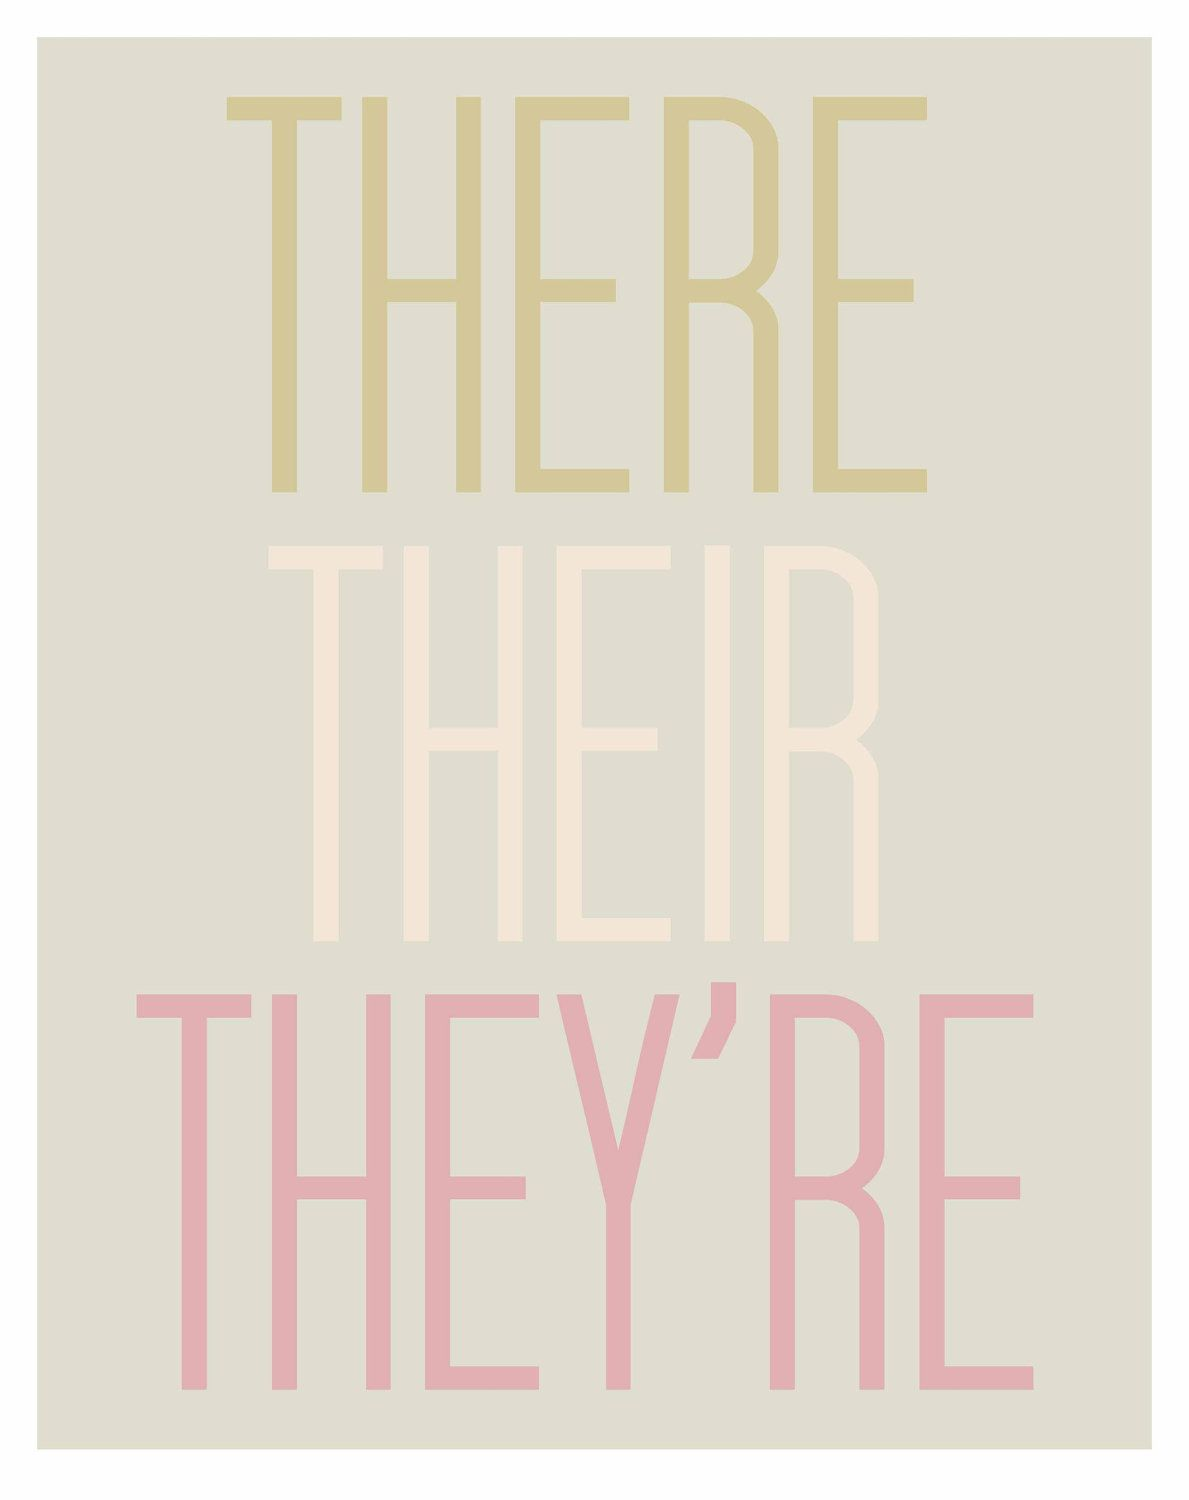 THERE THEIR THEY'RE - archival grammar art print. Brilliance!